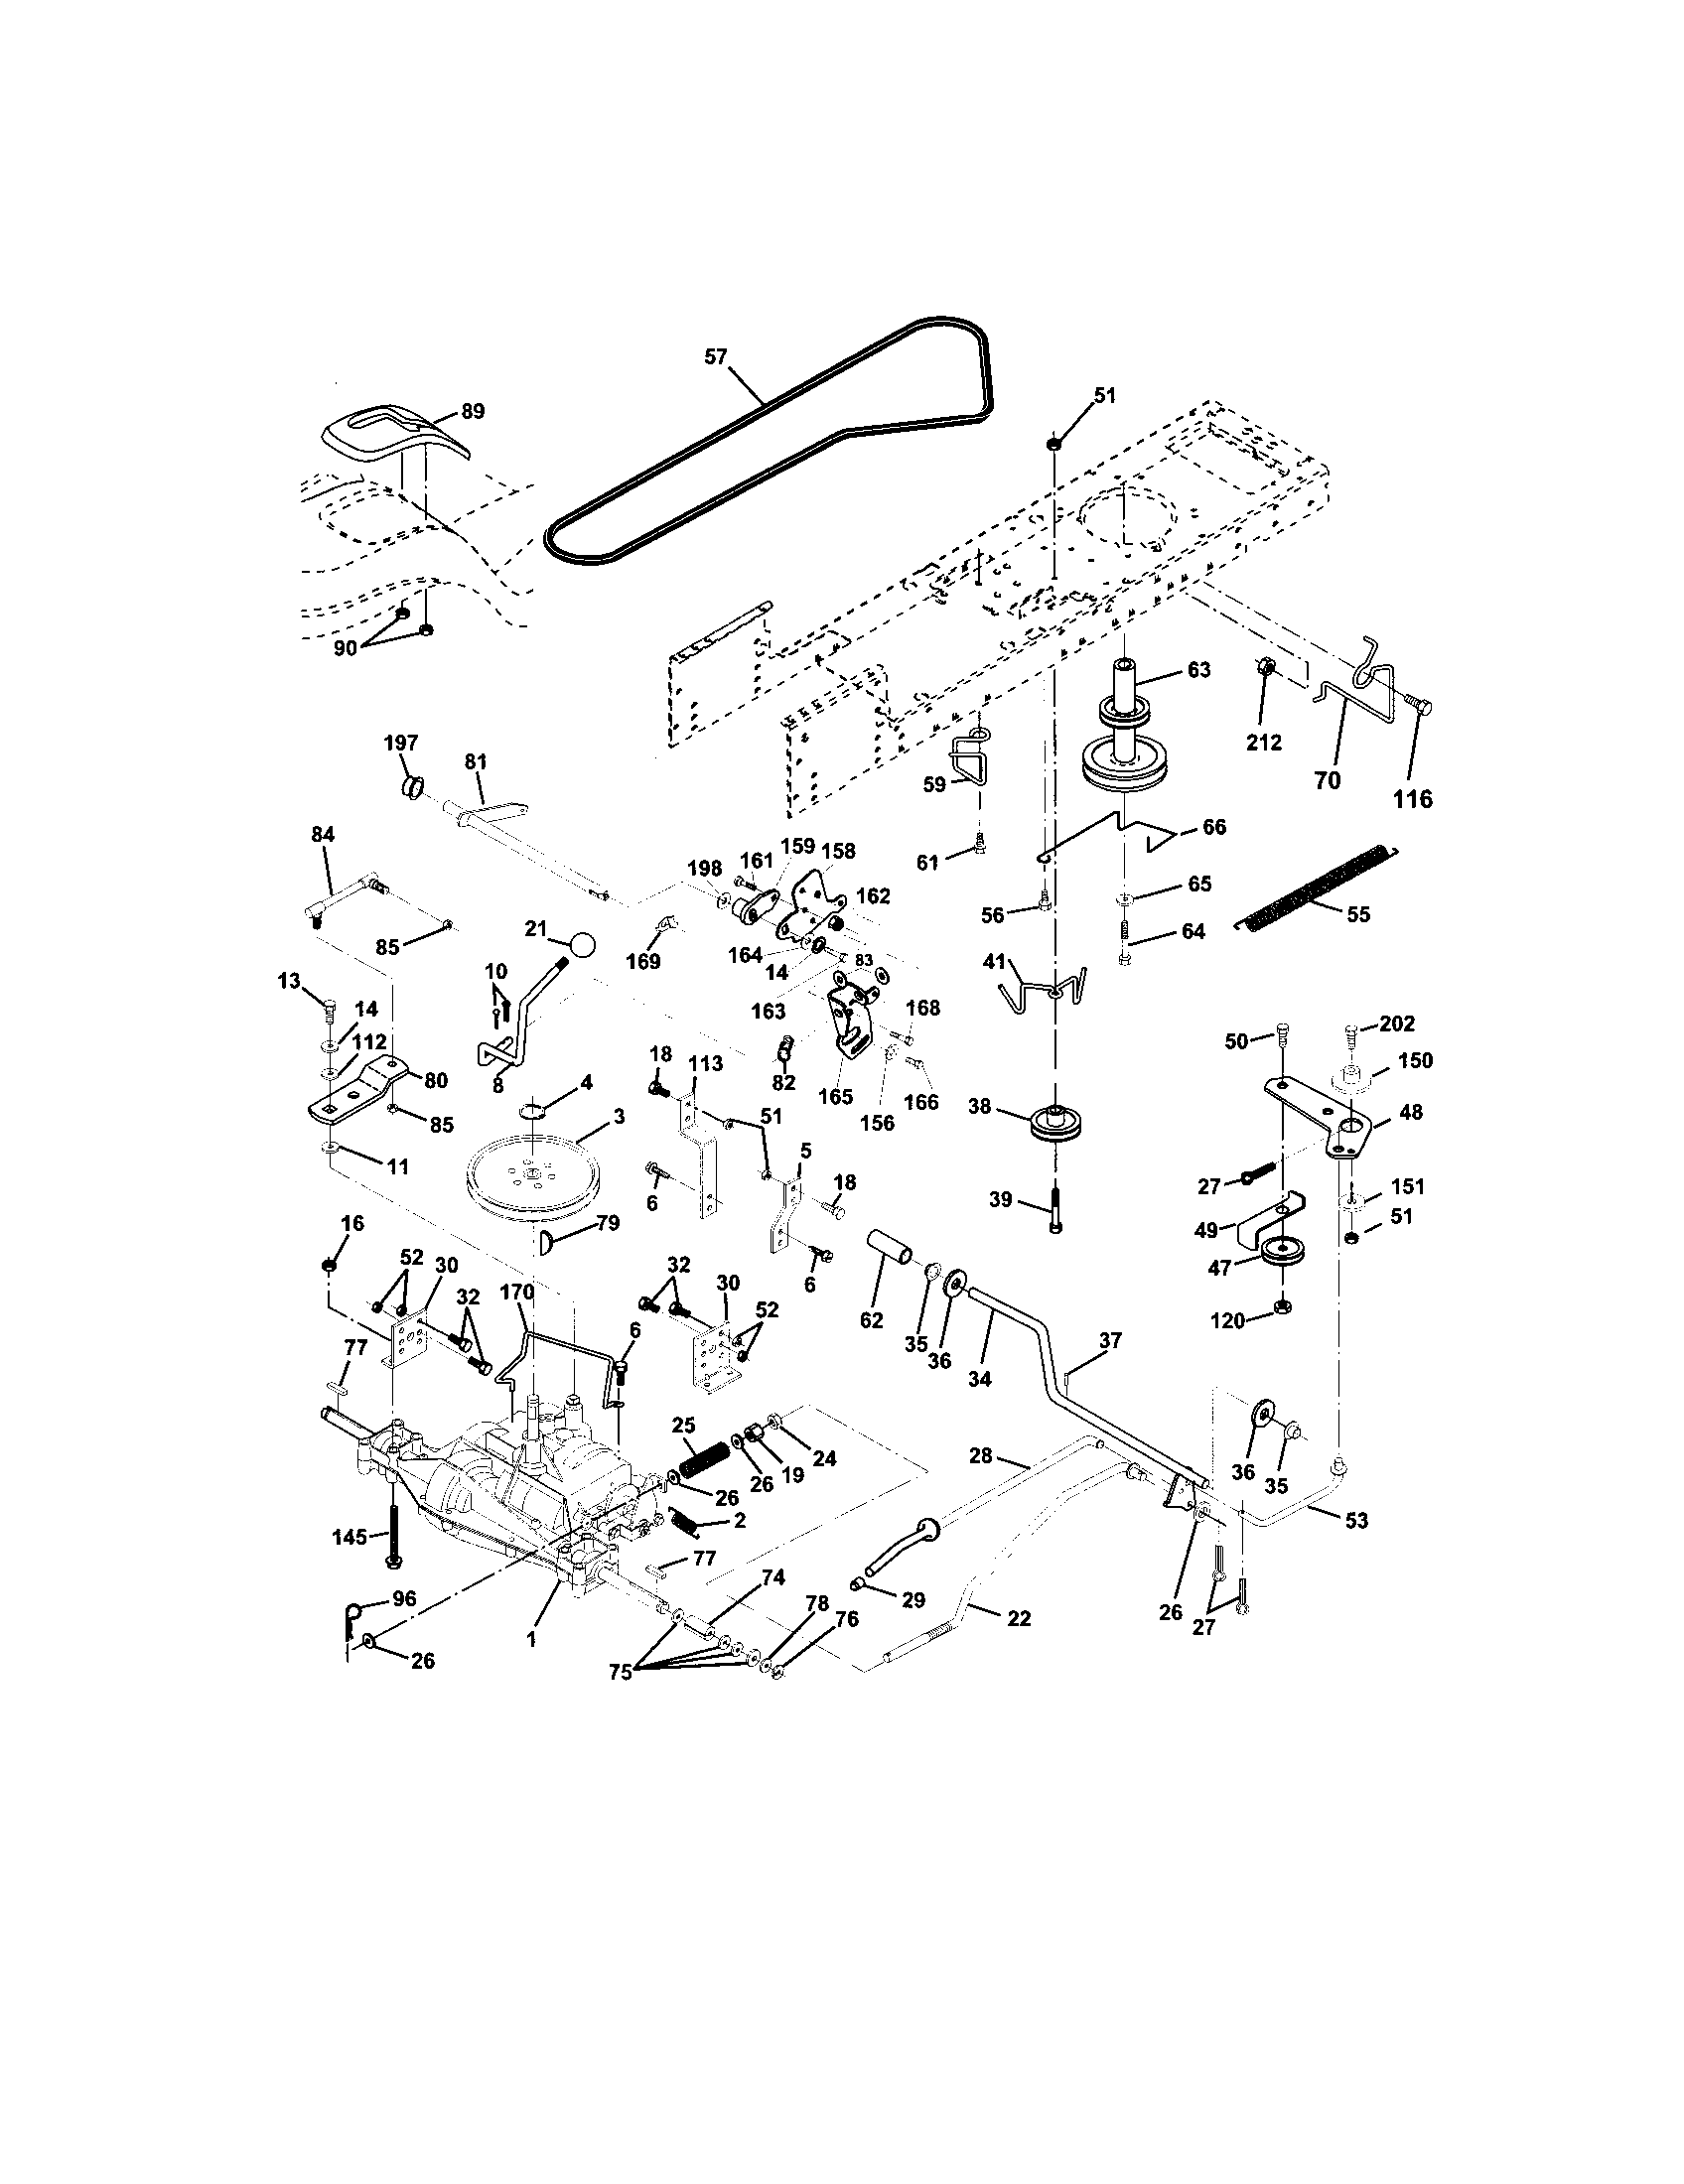 Parts Manual For Tecumseh Hm100 Carburetor